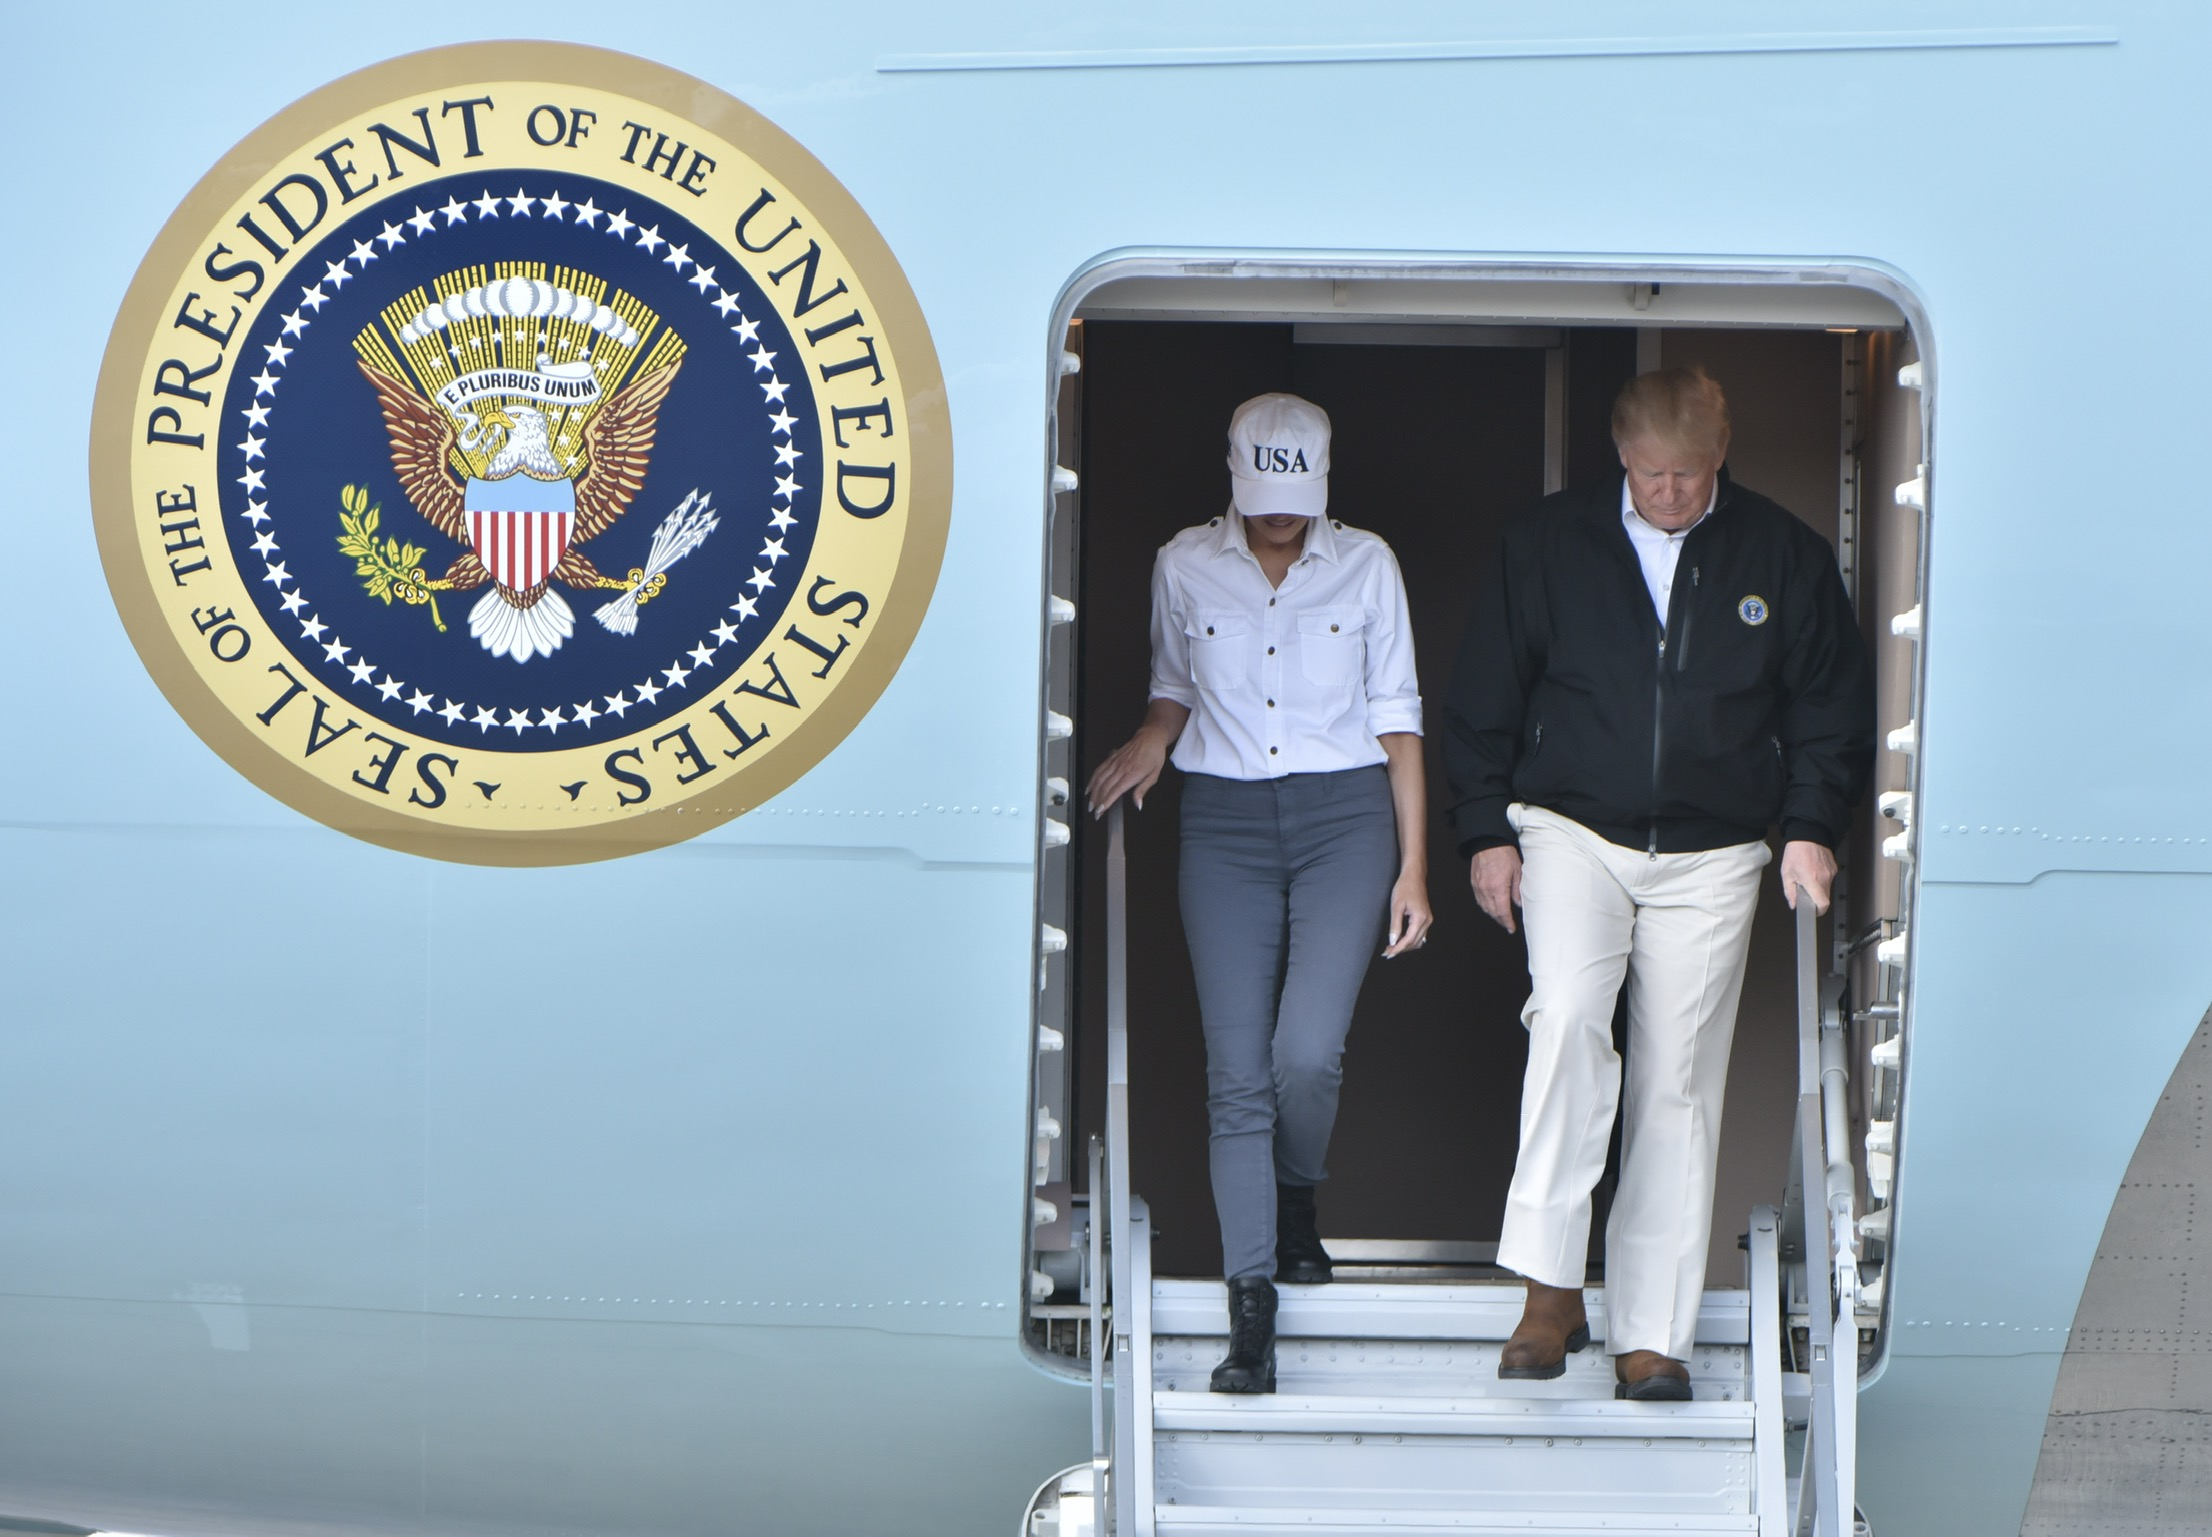 President Trump and First Lady land in Georgia, survey storm damage